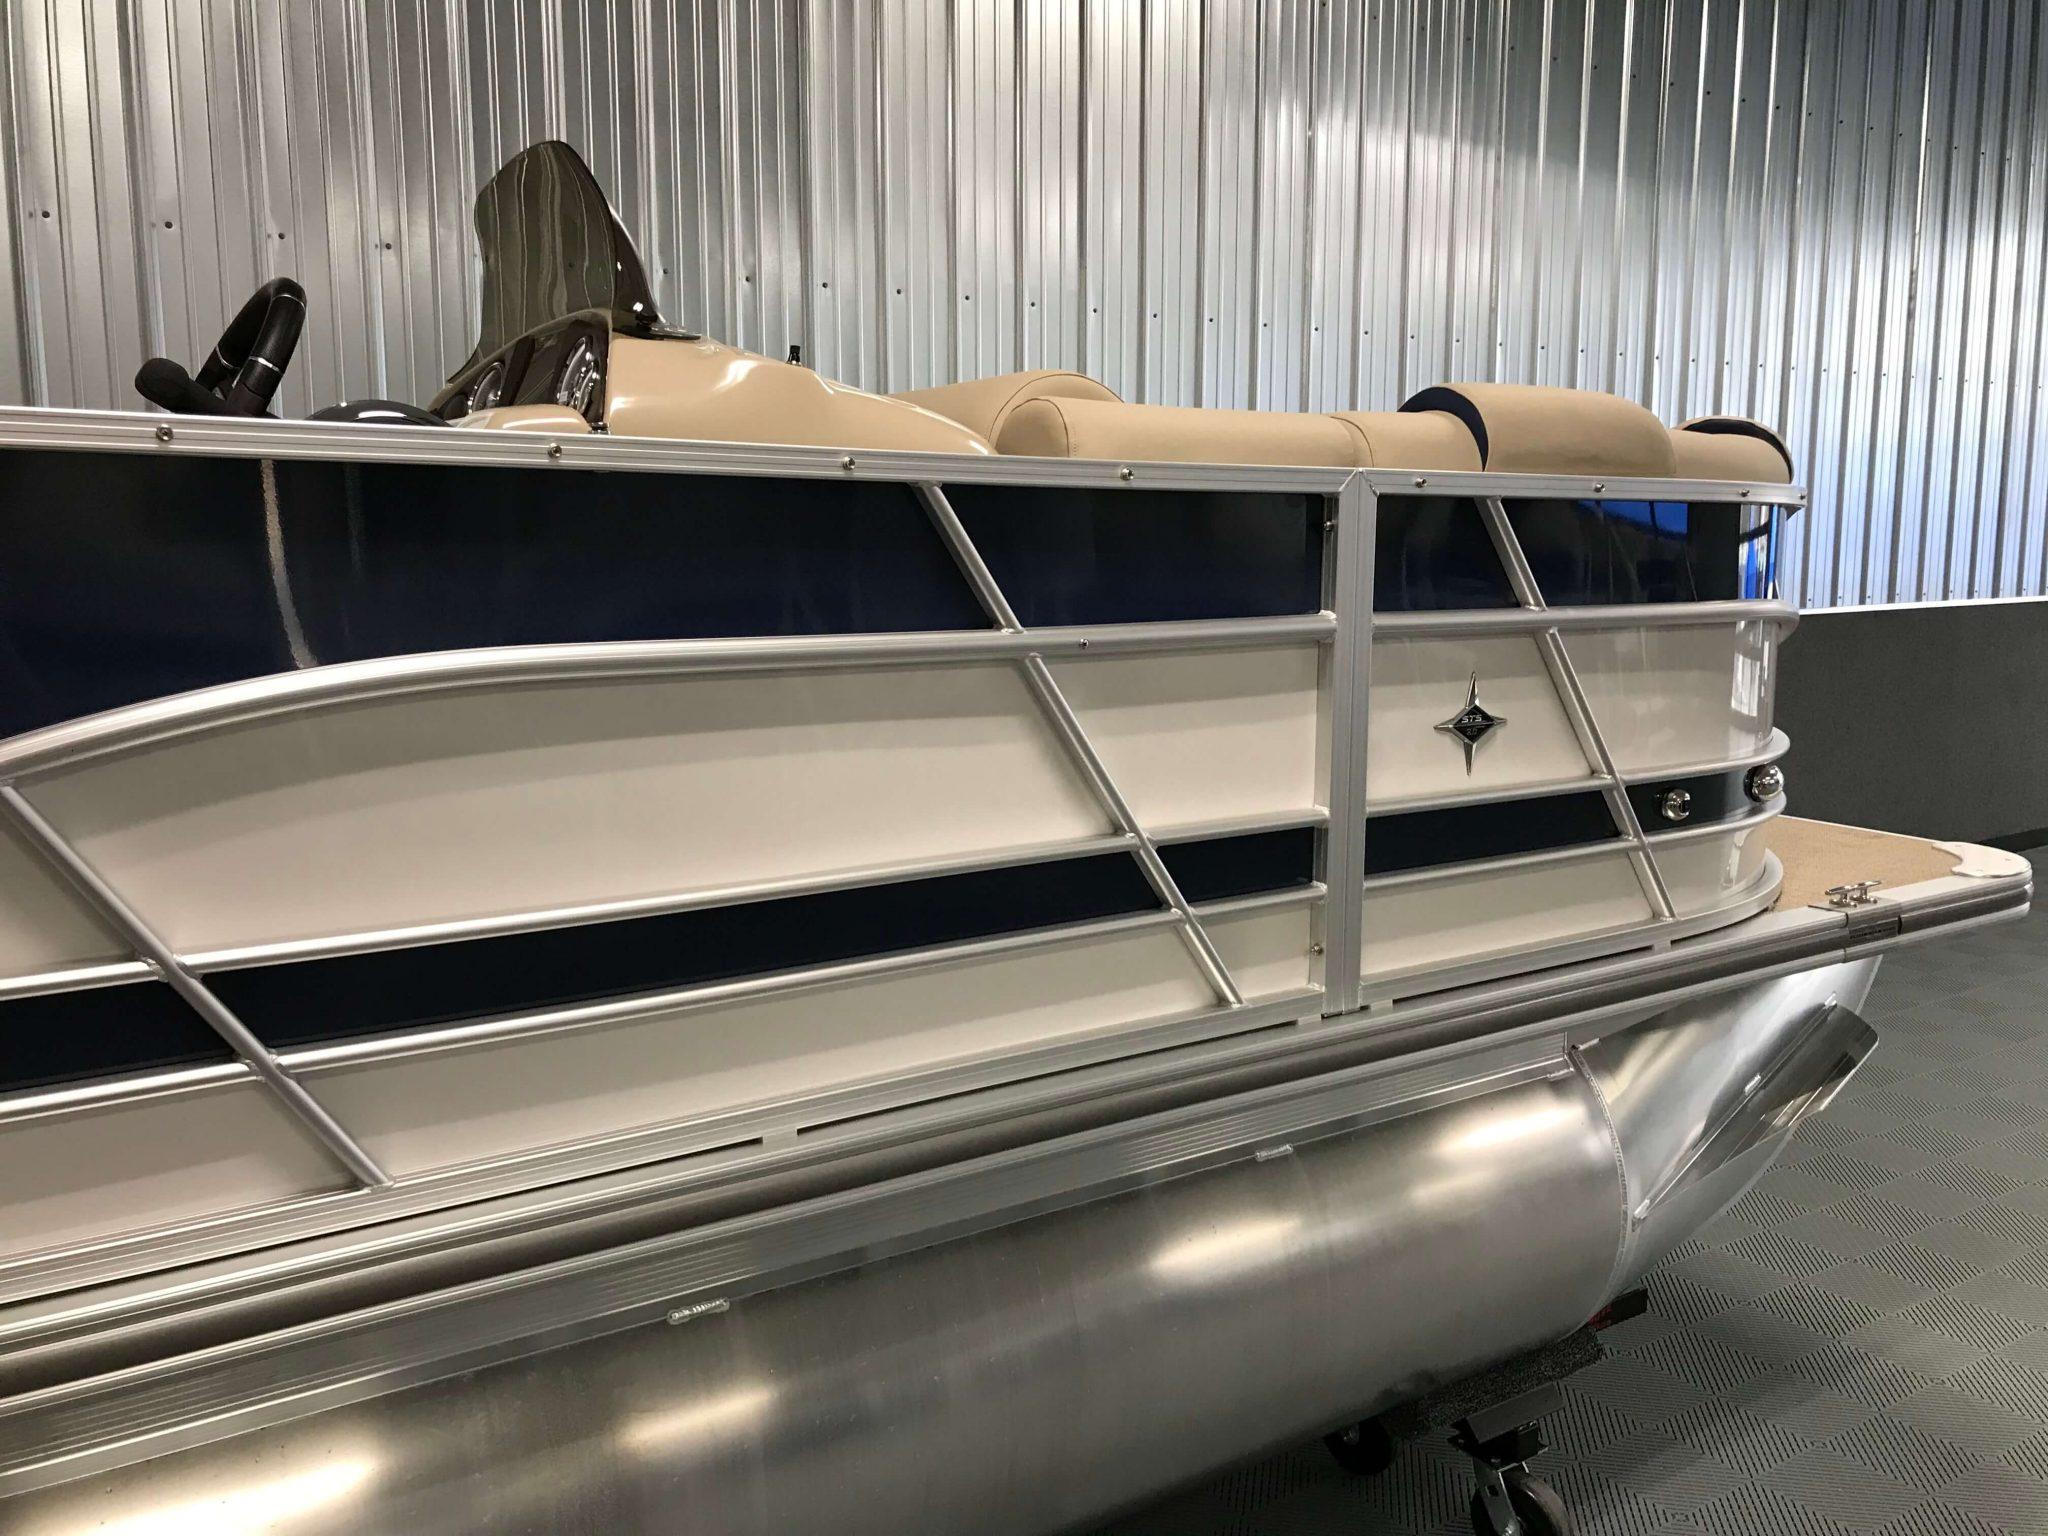 2019 Berkshire 23RFC2 STS Deluxe Pontoon Blue And White 6